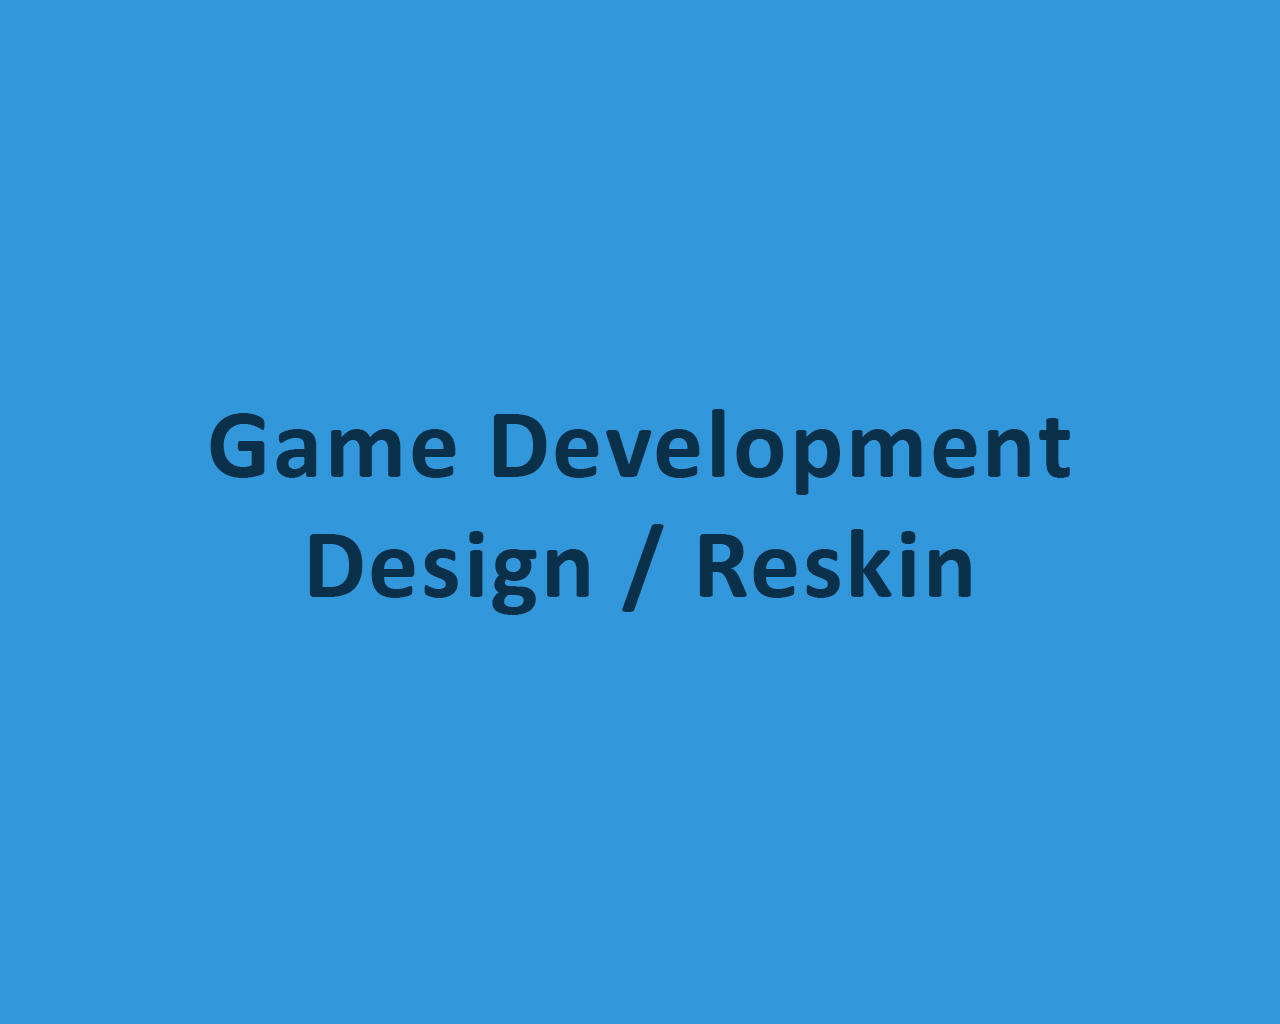 Game Development / Design / Reskin by odiusfly - 105960